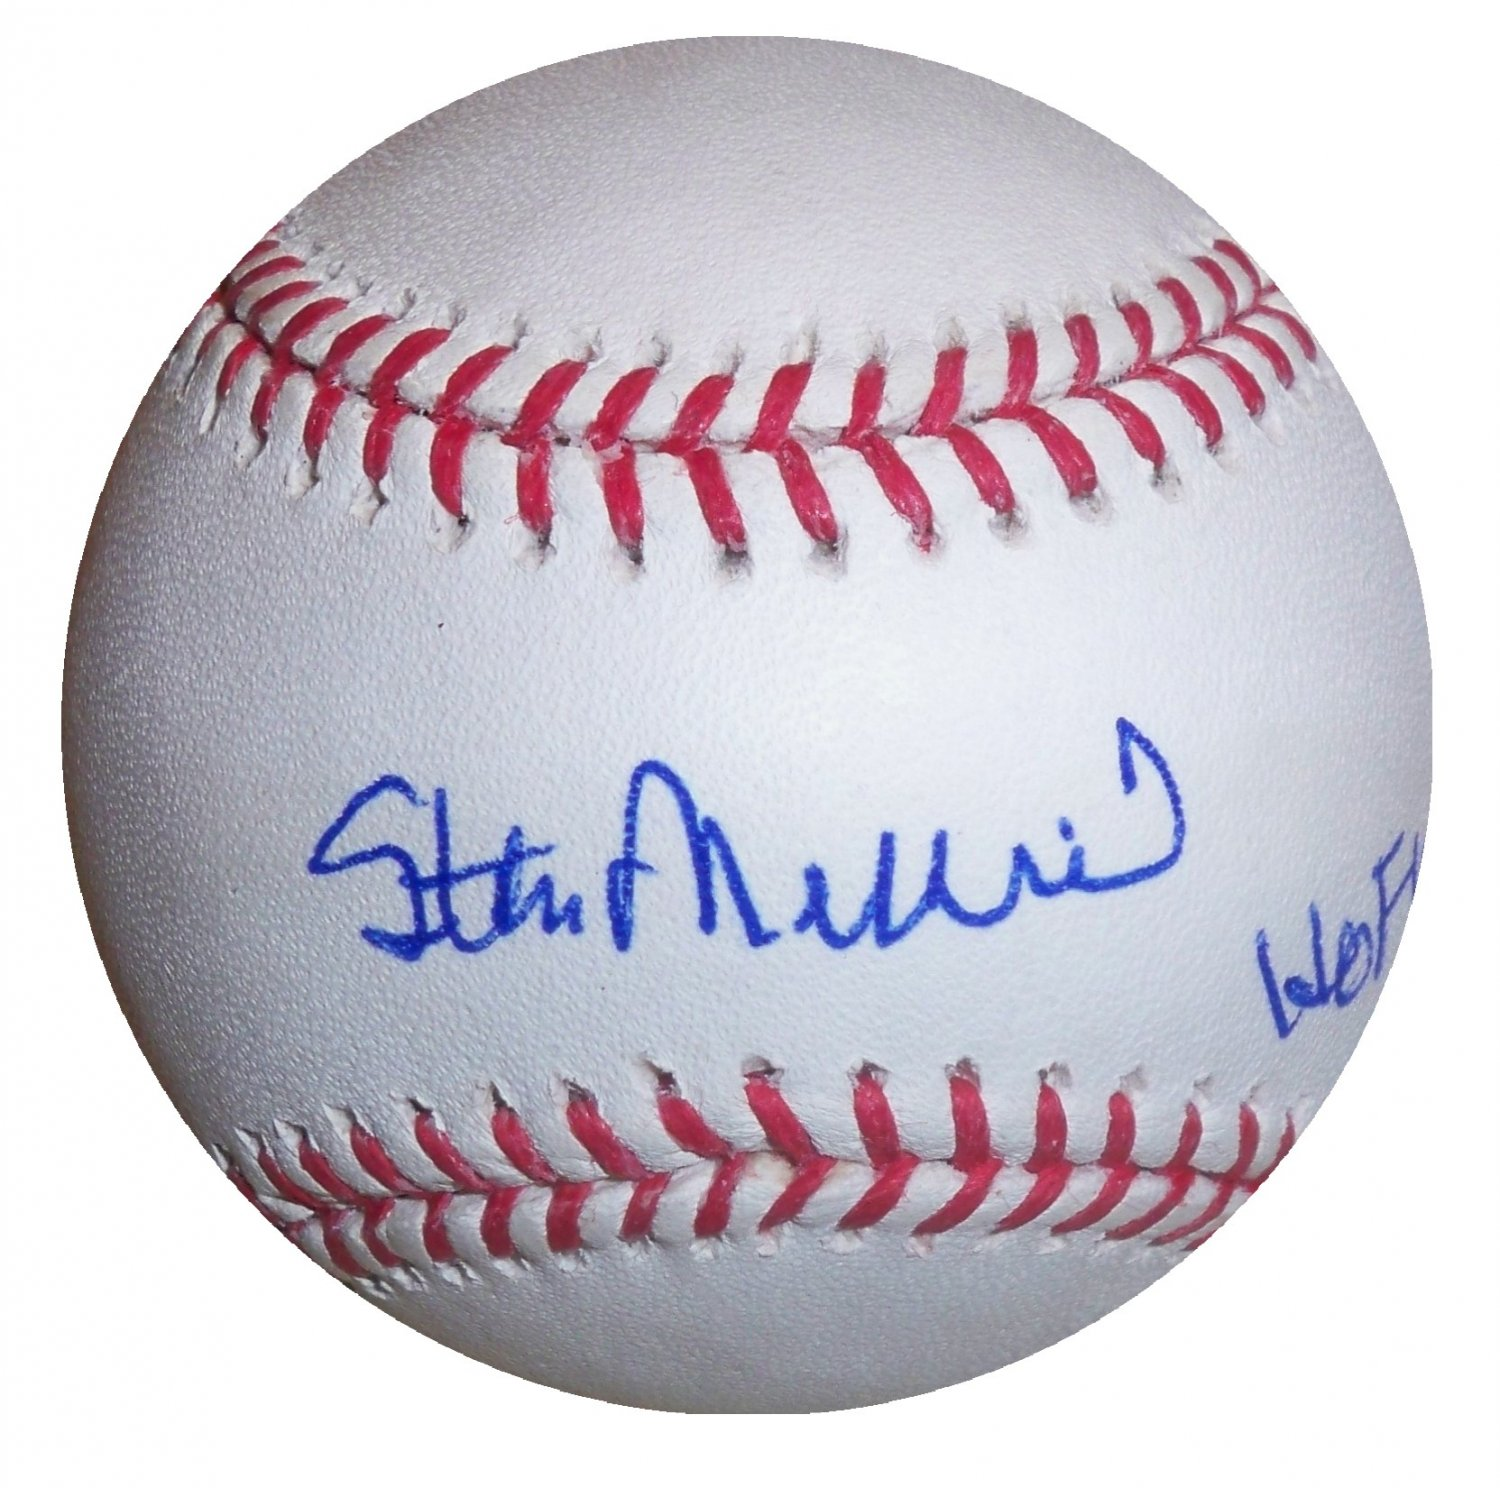 Stan Musial Signed Official Major League Baseball (PSA/DNA)